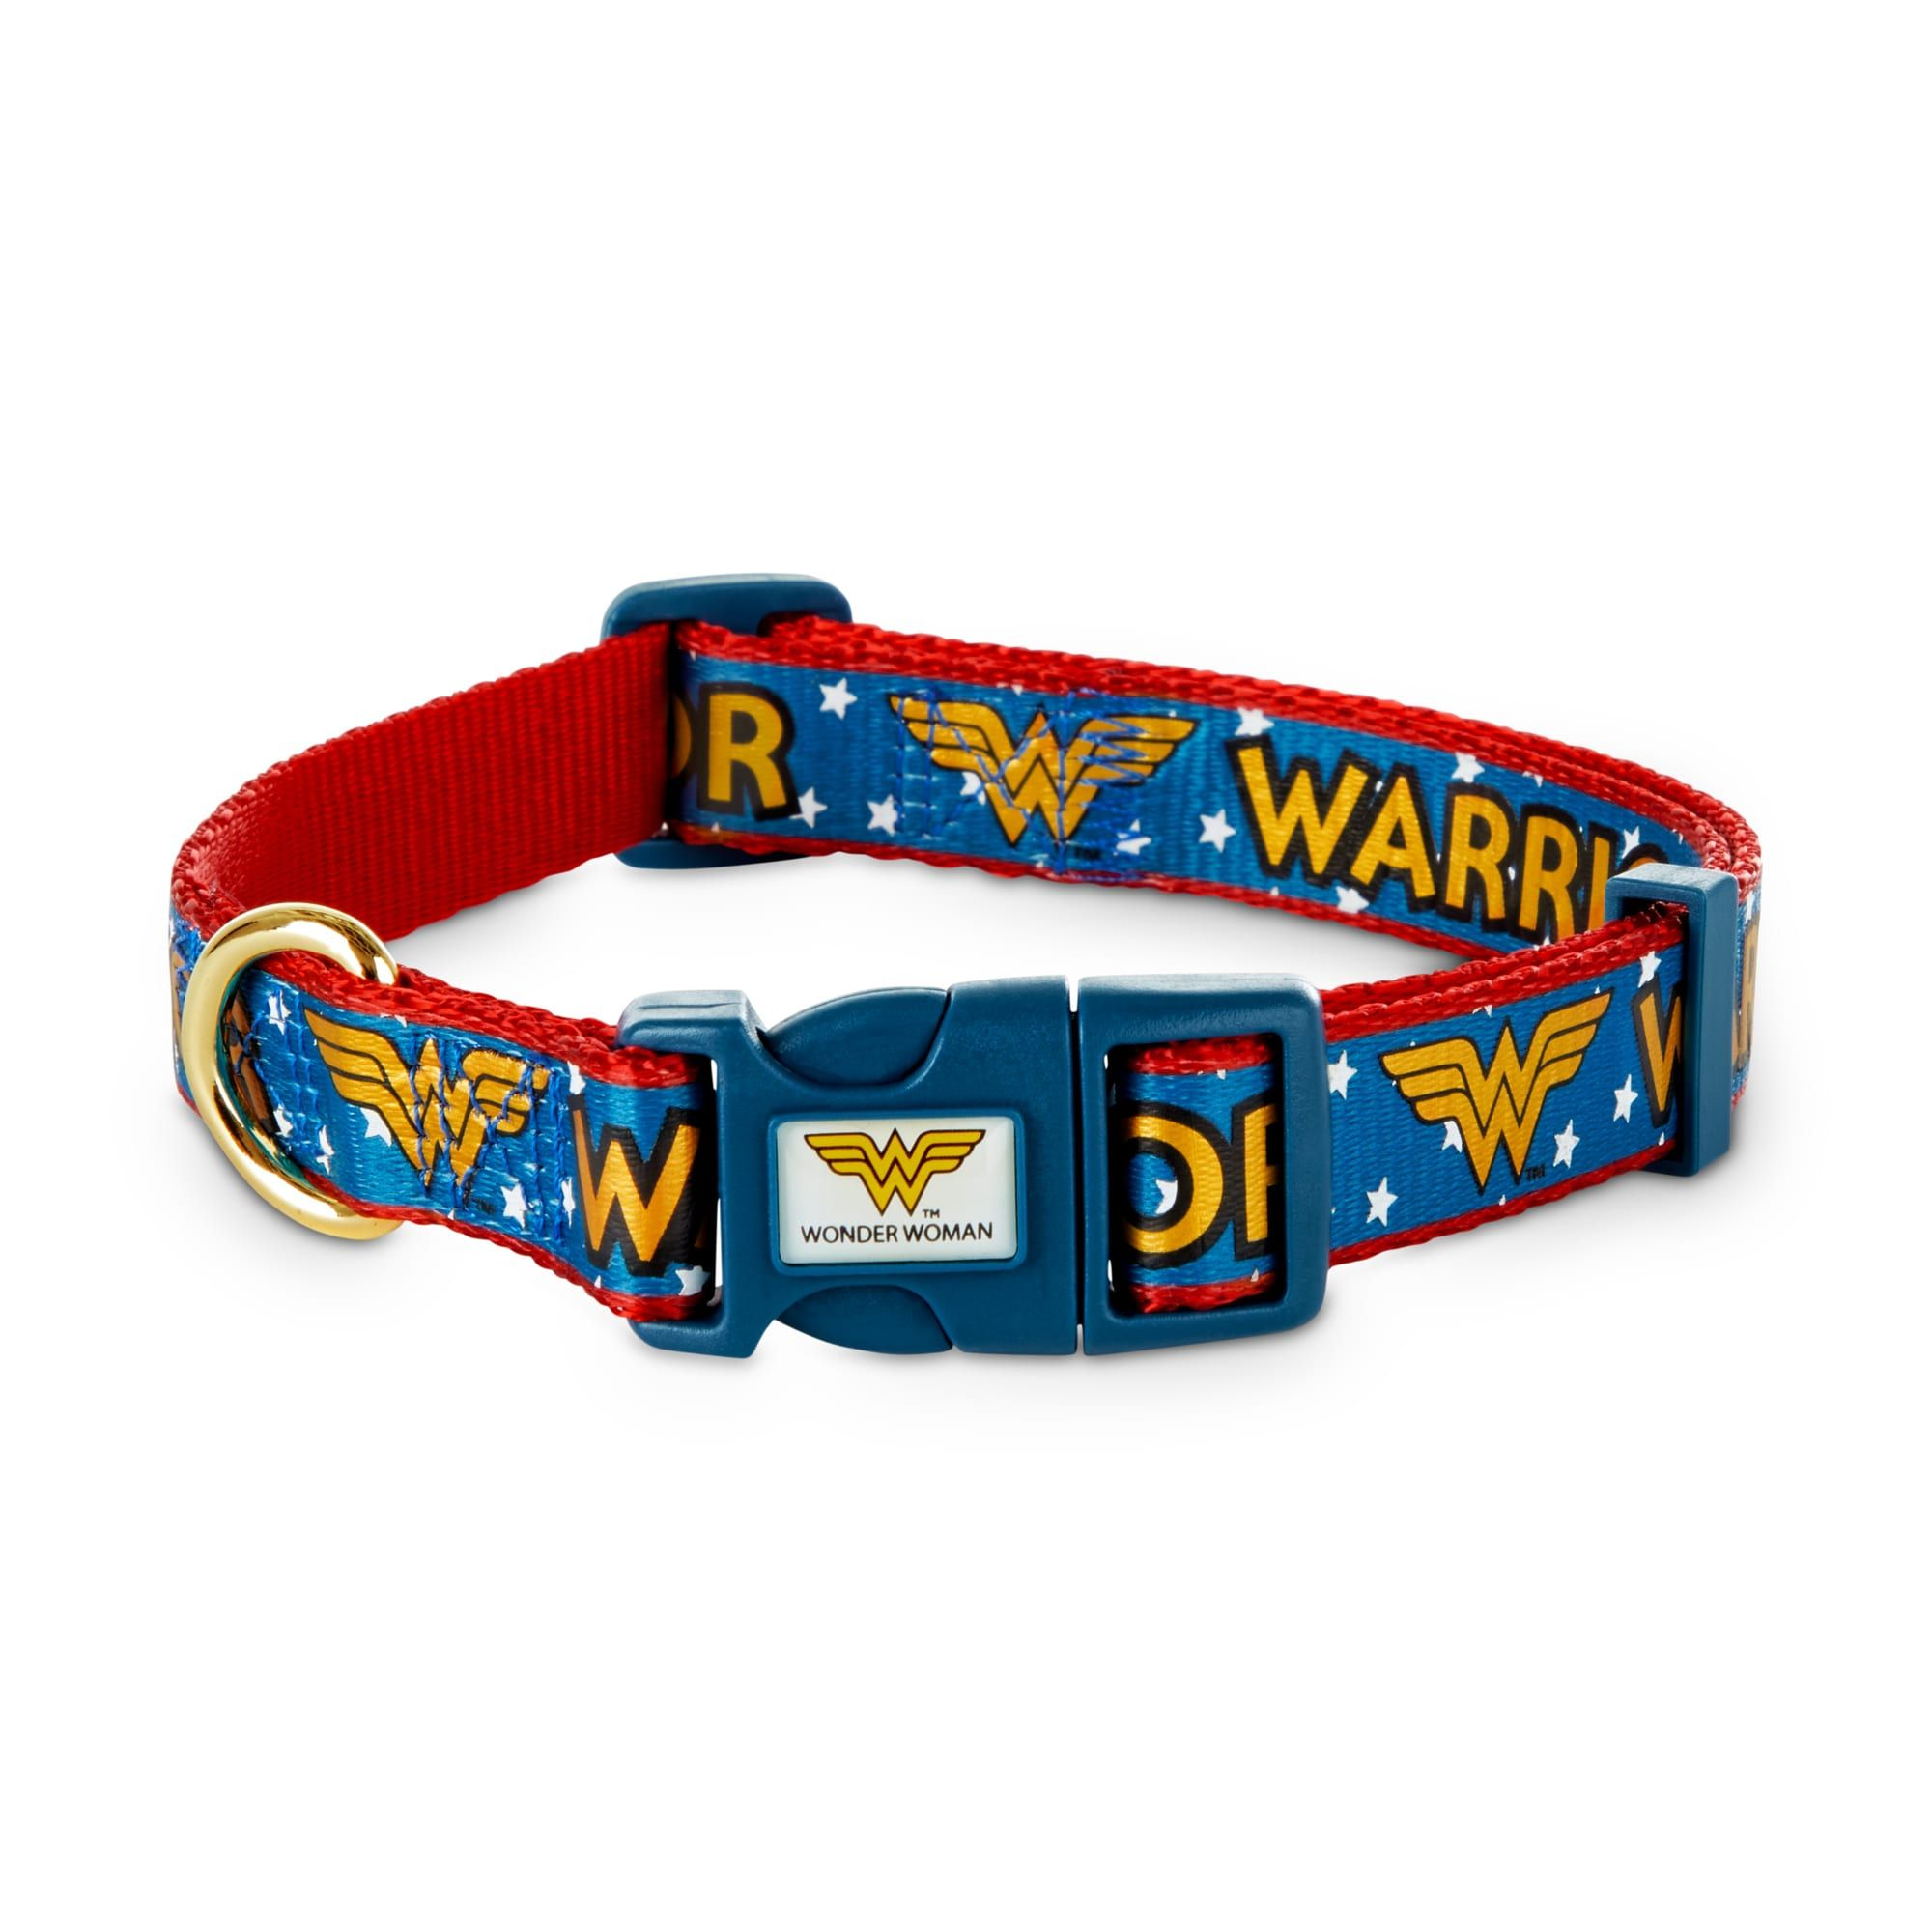 The DC Comics Justice League Wonder Woman Dog Collar captures the spirit of the Amazon Warrior by highlighting the characteristics your pup shares with the DC Super Hero herself. An adjustable fit, a secure closure and an emblem-embellished band partner to provide your pup with a comfortable fit and heroic look.